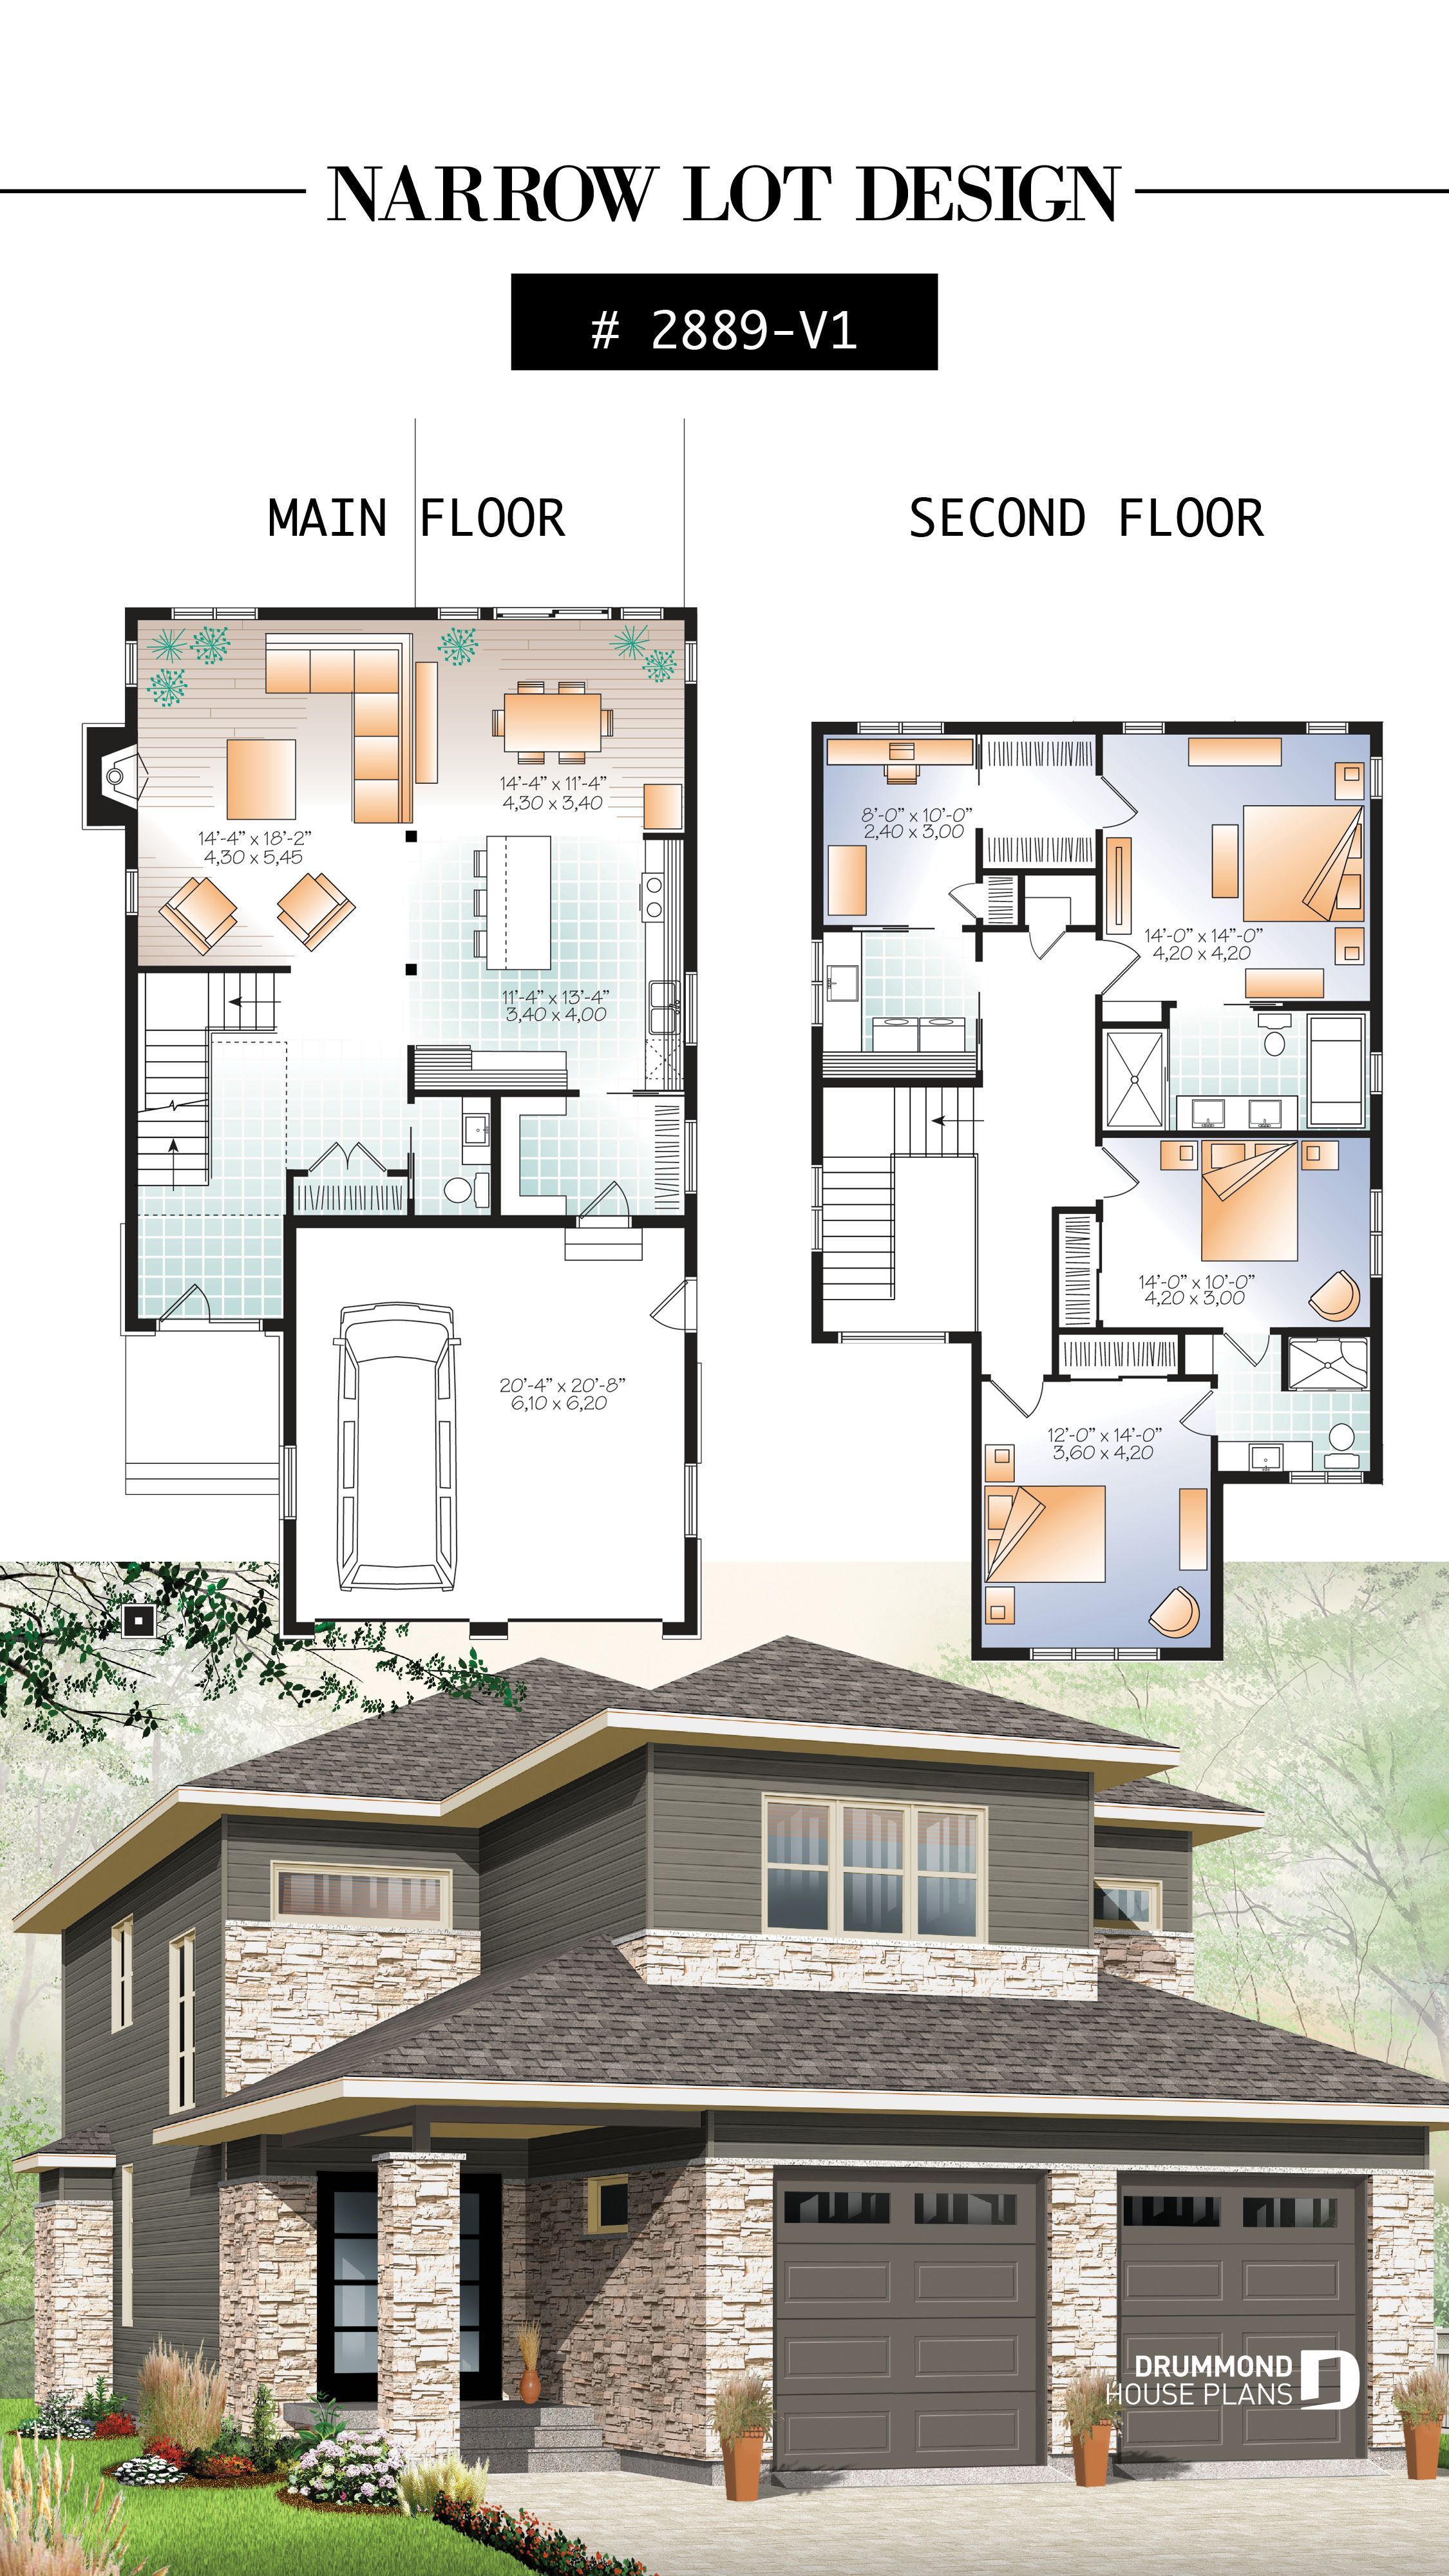 4 Bedroom Modern Home Design Nursery Off The Master Bedroom Open Floor Plan Large Pantry Modern Floor Plans Sims House Plans House Layouts